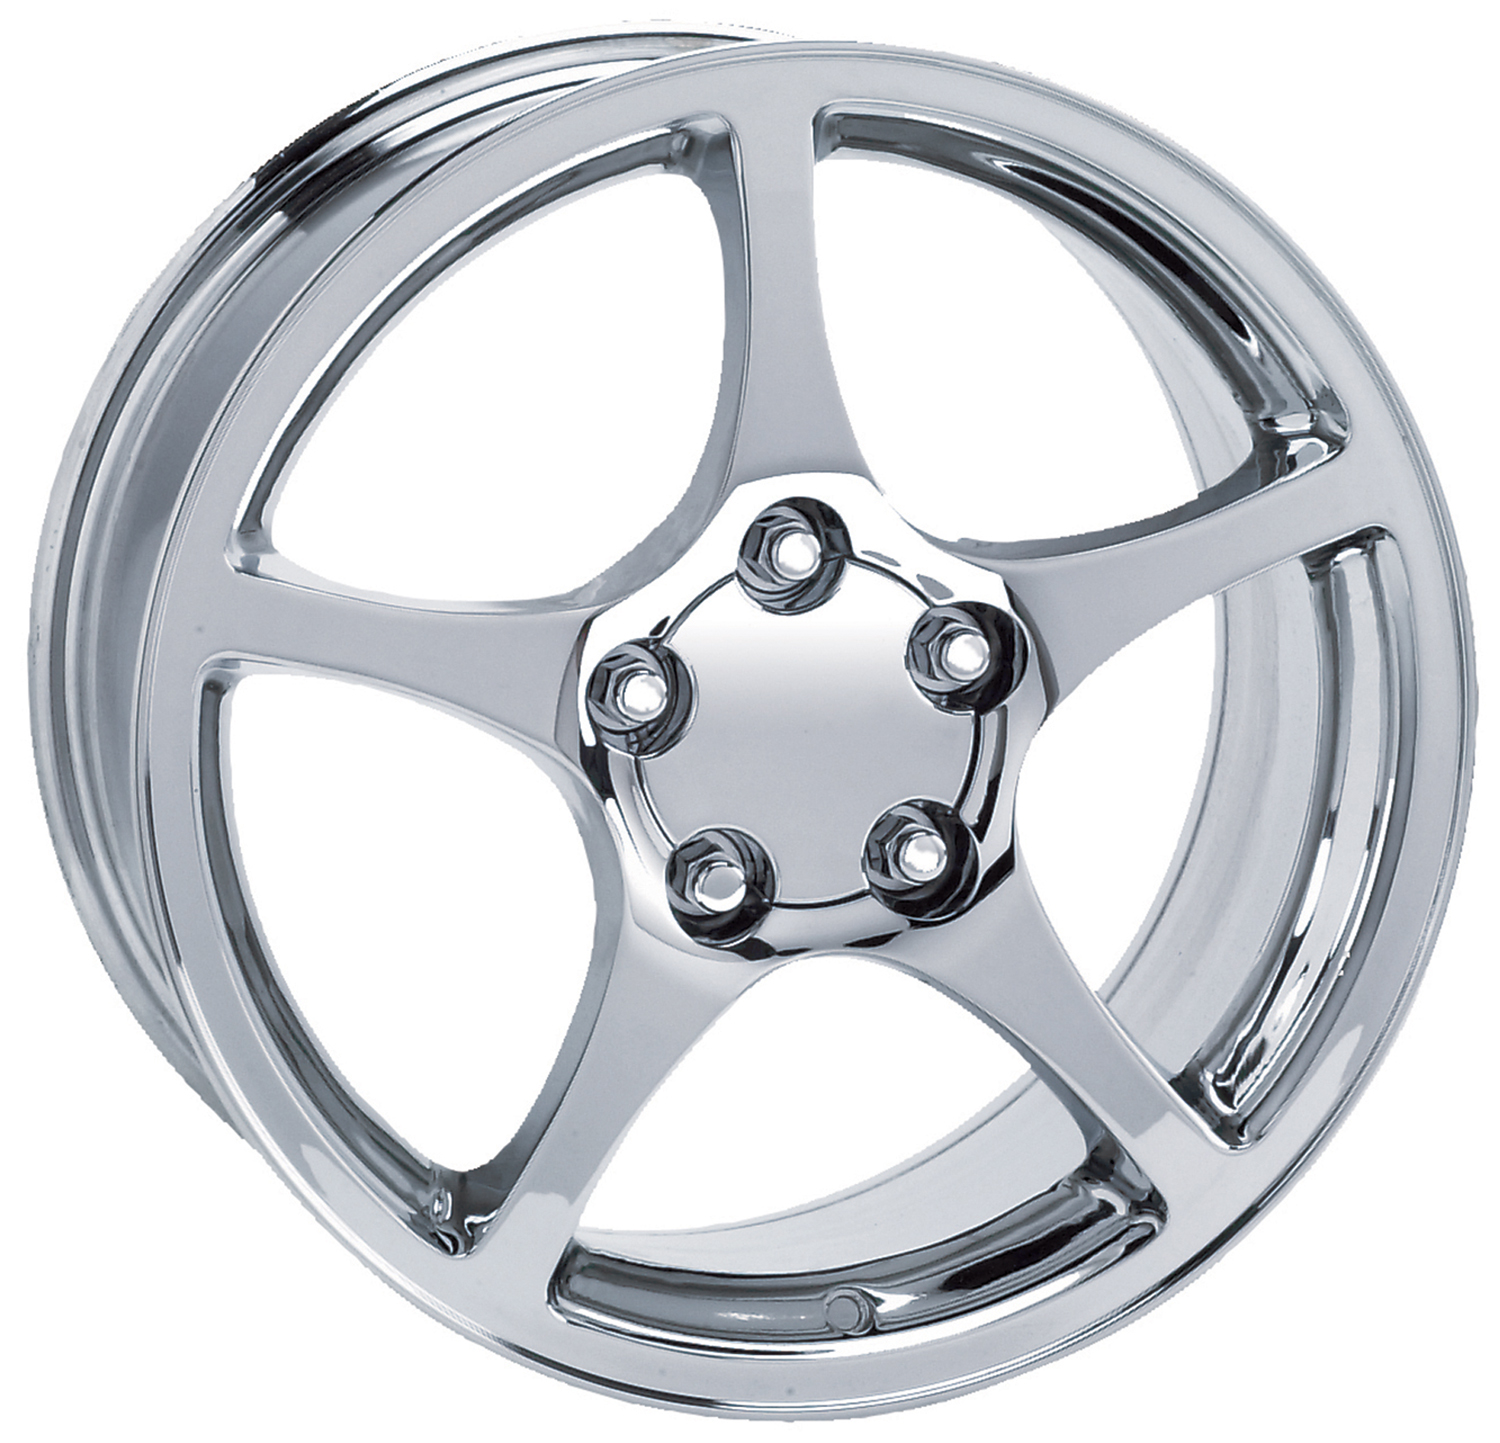 Chevrolet Corvette 1997-2000 18x9.5 5x4.75 +56 - 2000 Style Wheel - Chrome With Cap